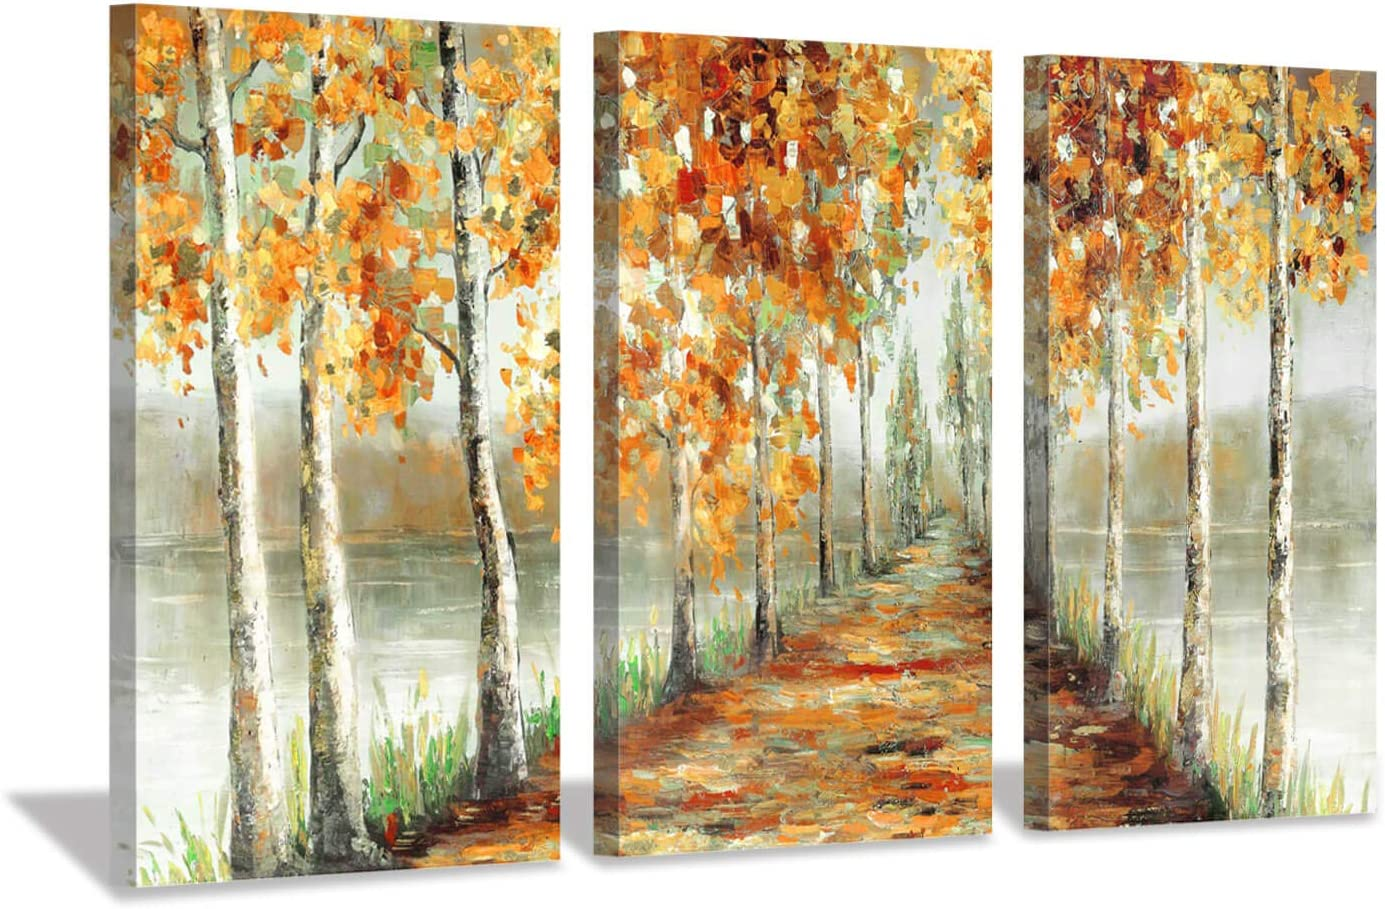 Modern Home decor Art wall Golden Autumn Landscape Painting Printed on Canvas 12